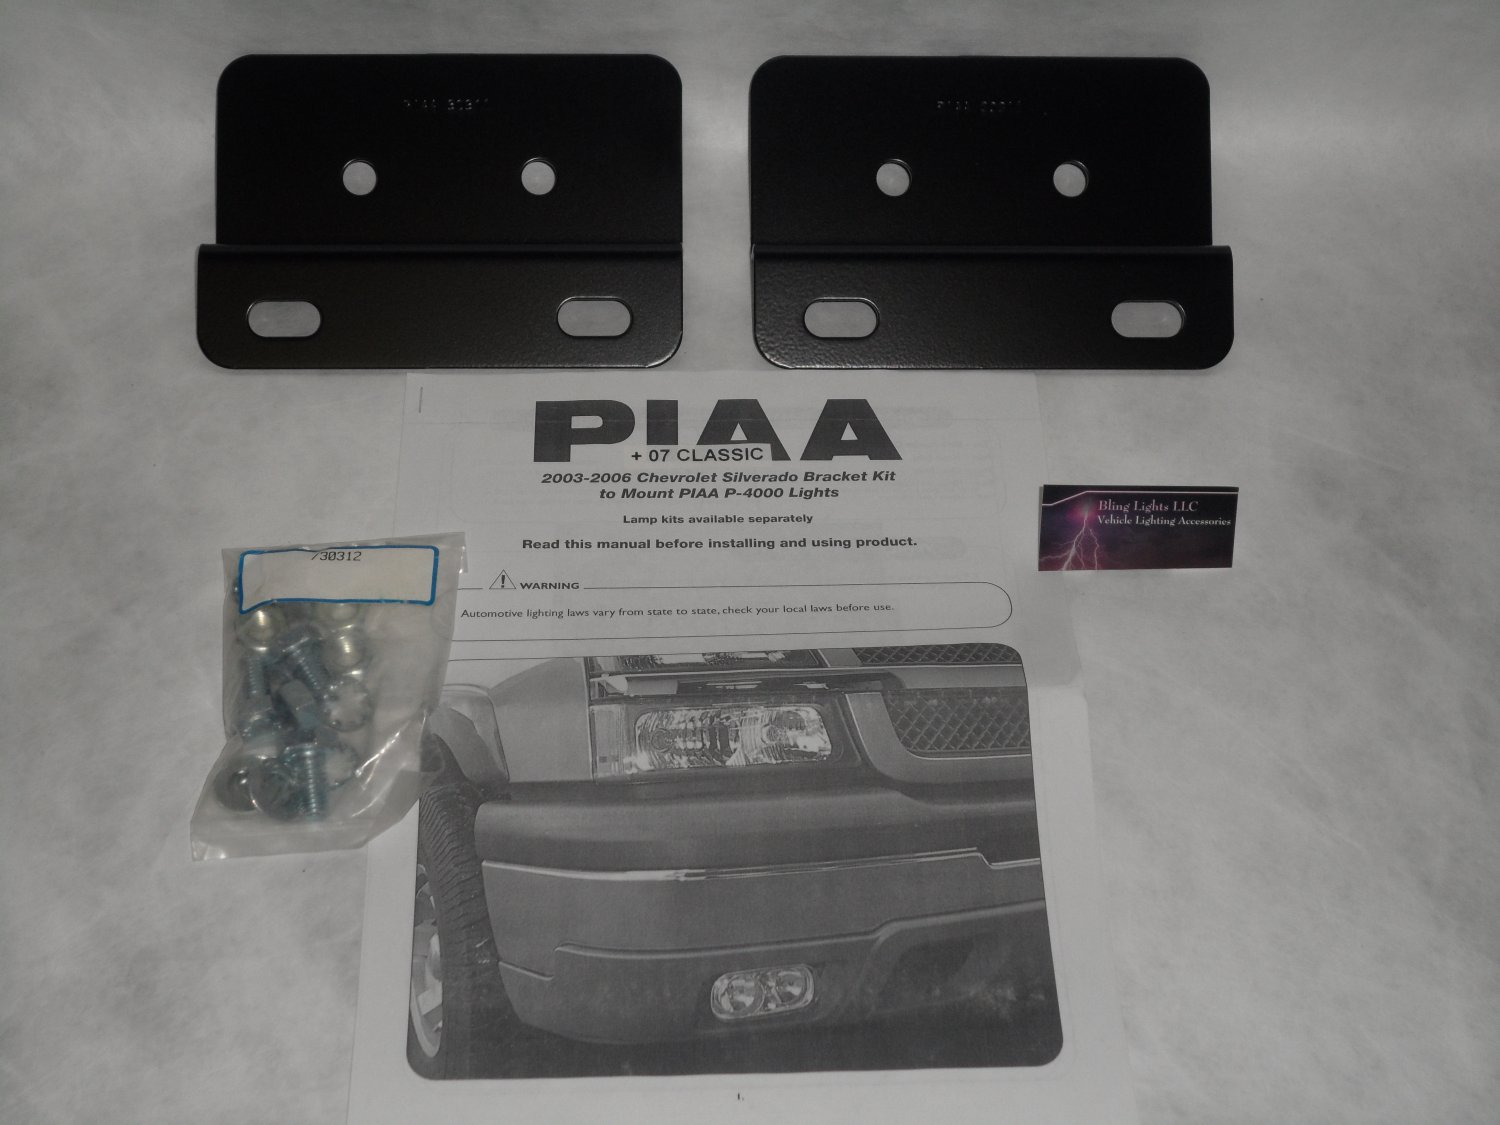 2003-2007 Chevrolet Silverado PIAA 30310 Mounts for P-4000 Lamps